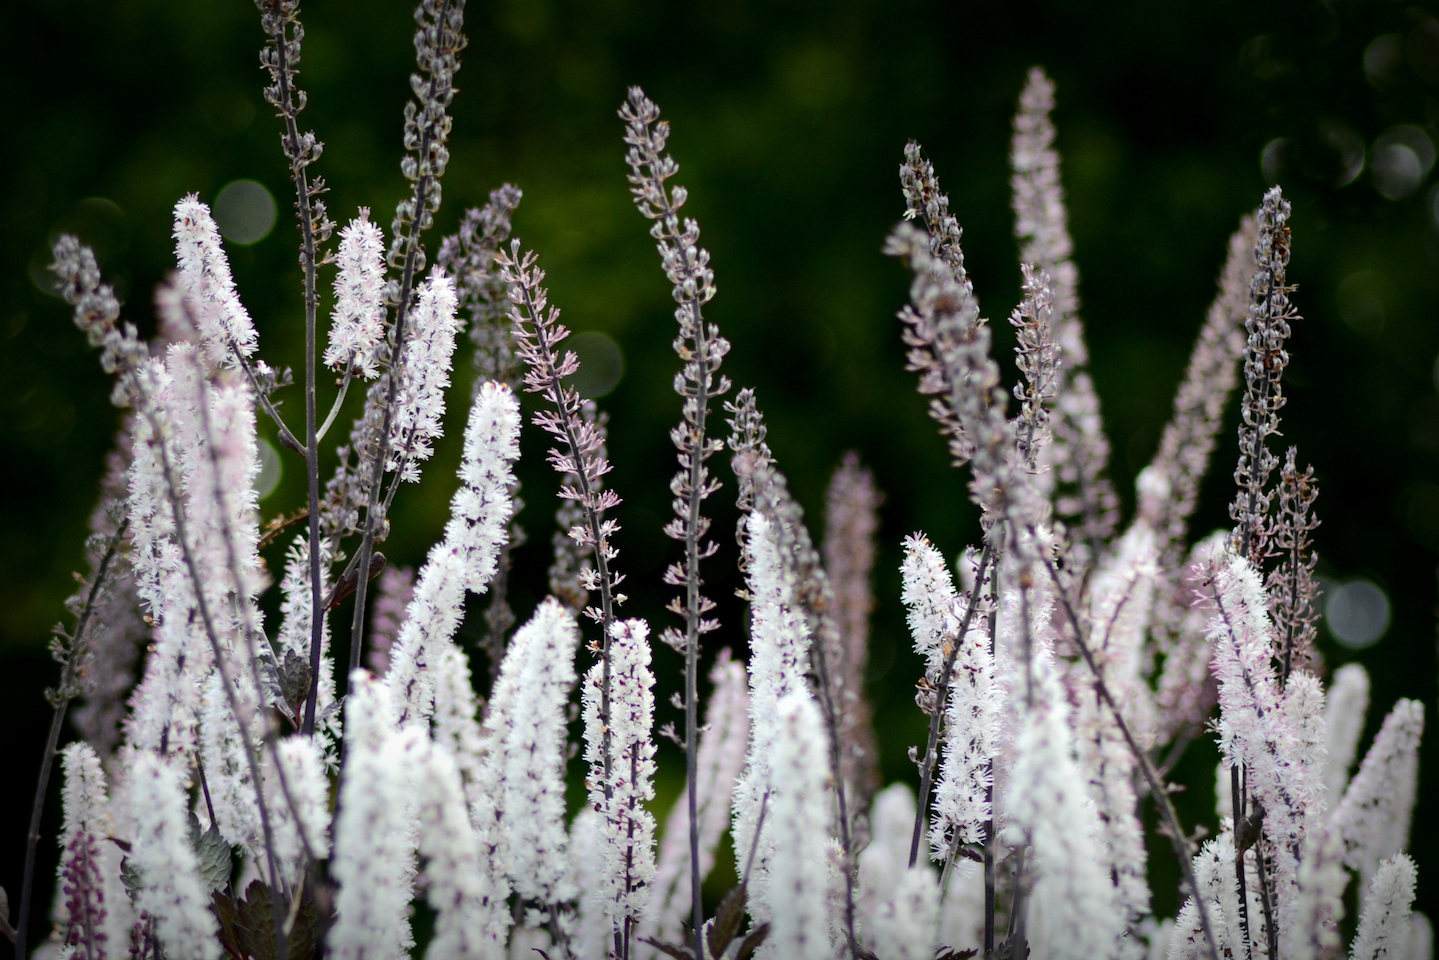 Light violet and white tall plumey flower plants